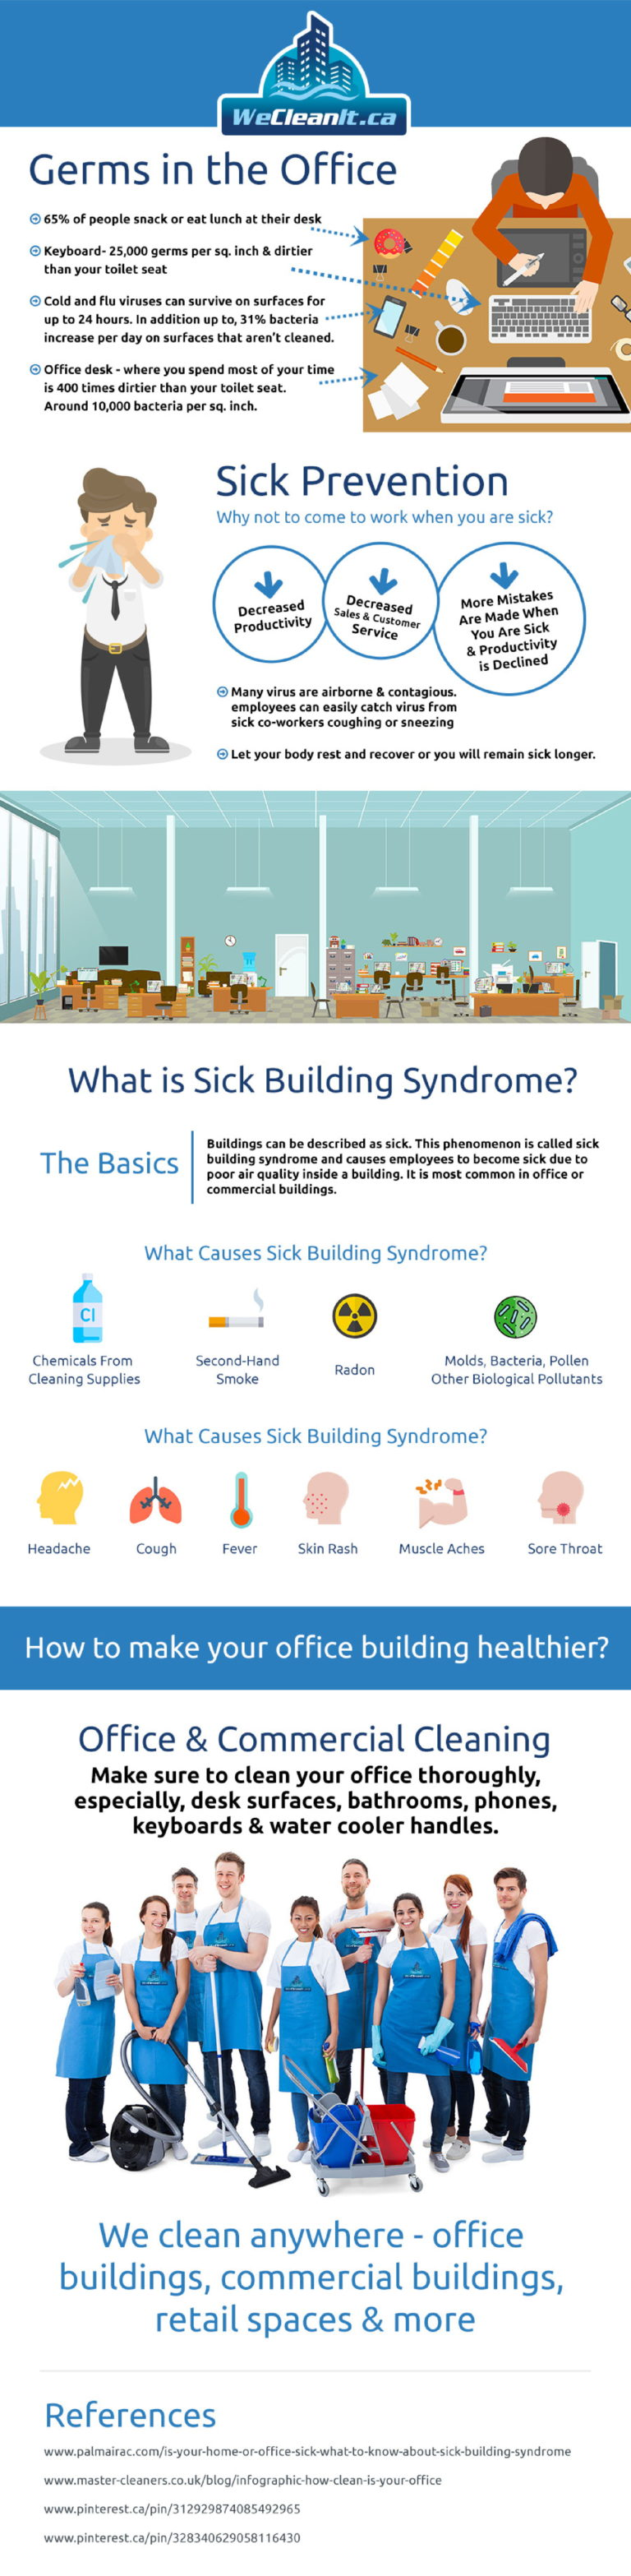 germs-in-office-infographic-plaza